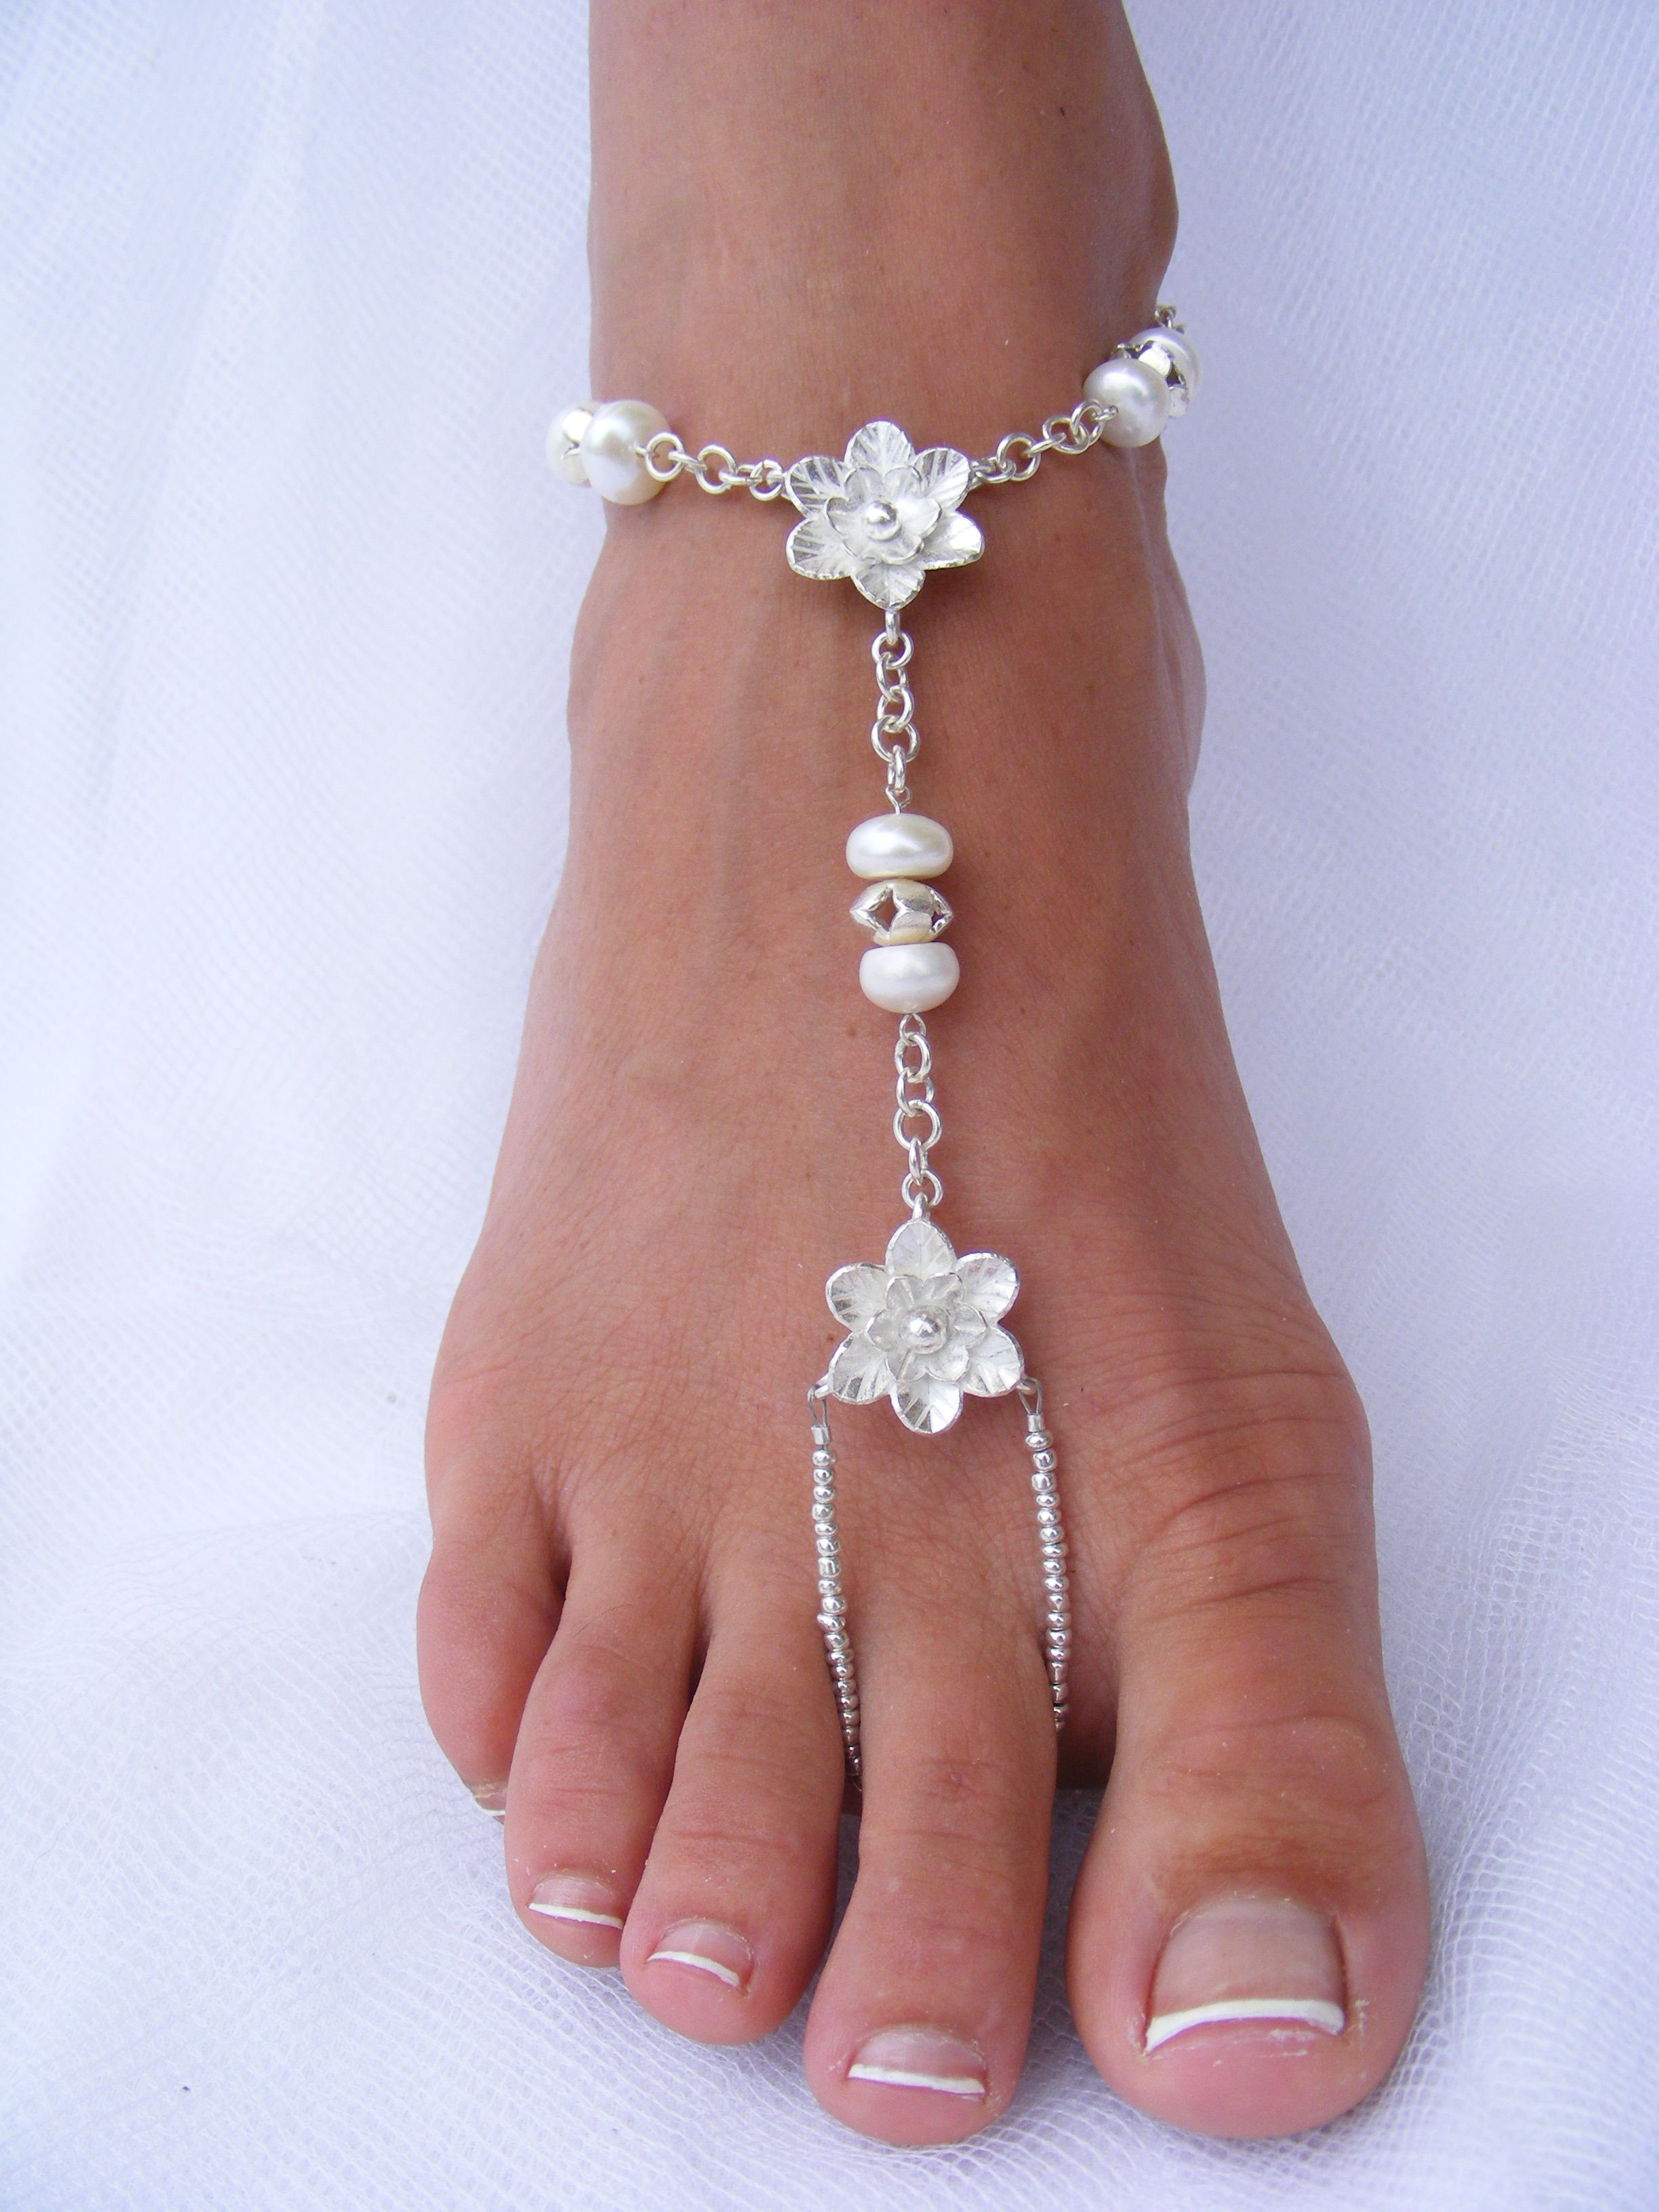 sandals wedding bohemian pin ancient indian foot boho barefoot anklets dance jewellery jewelled silver anklet jewelry